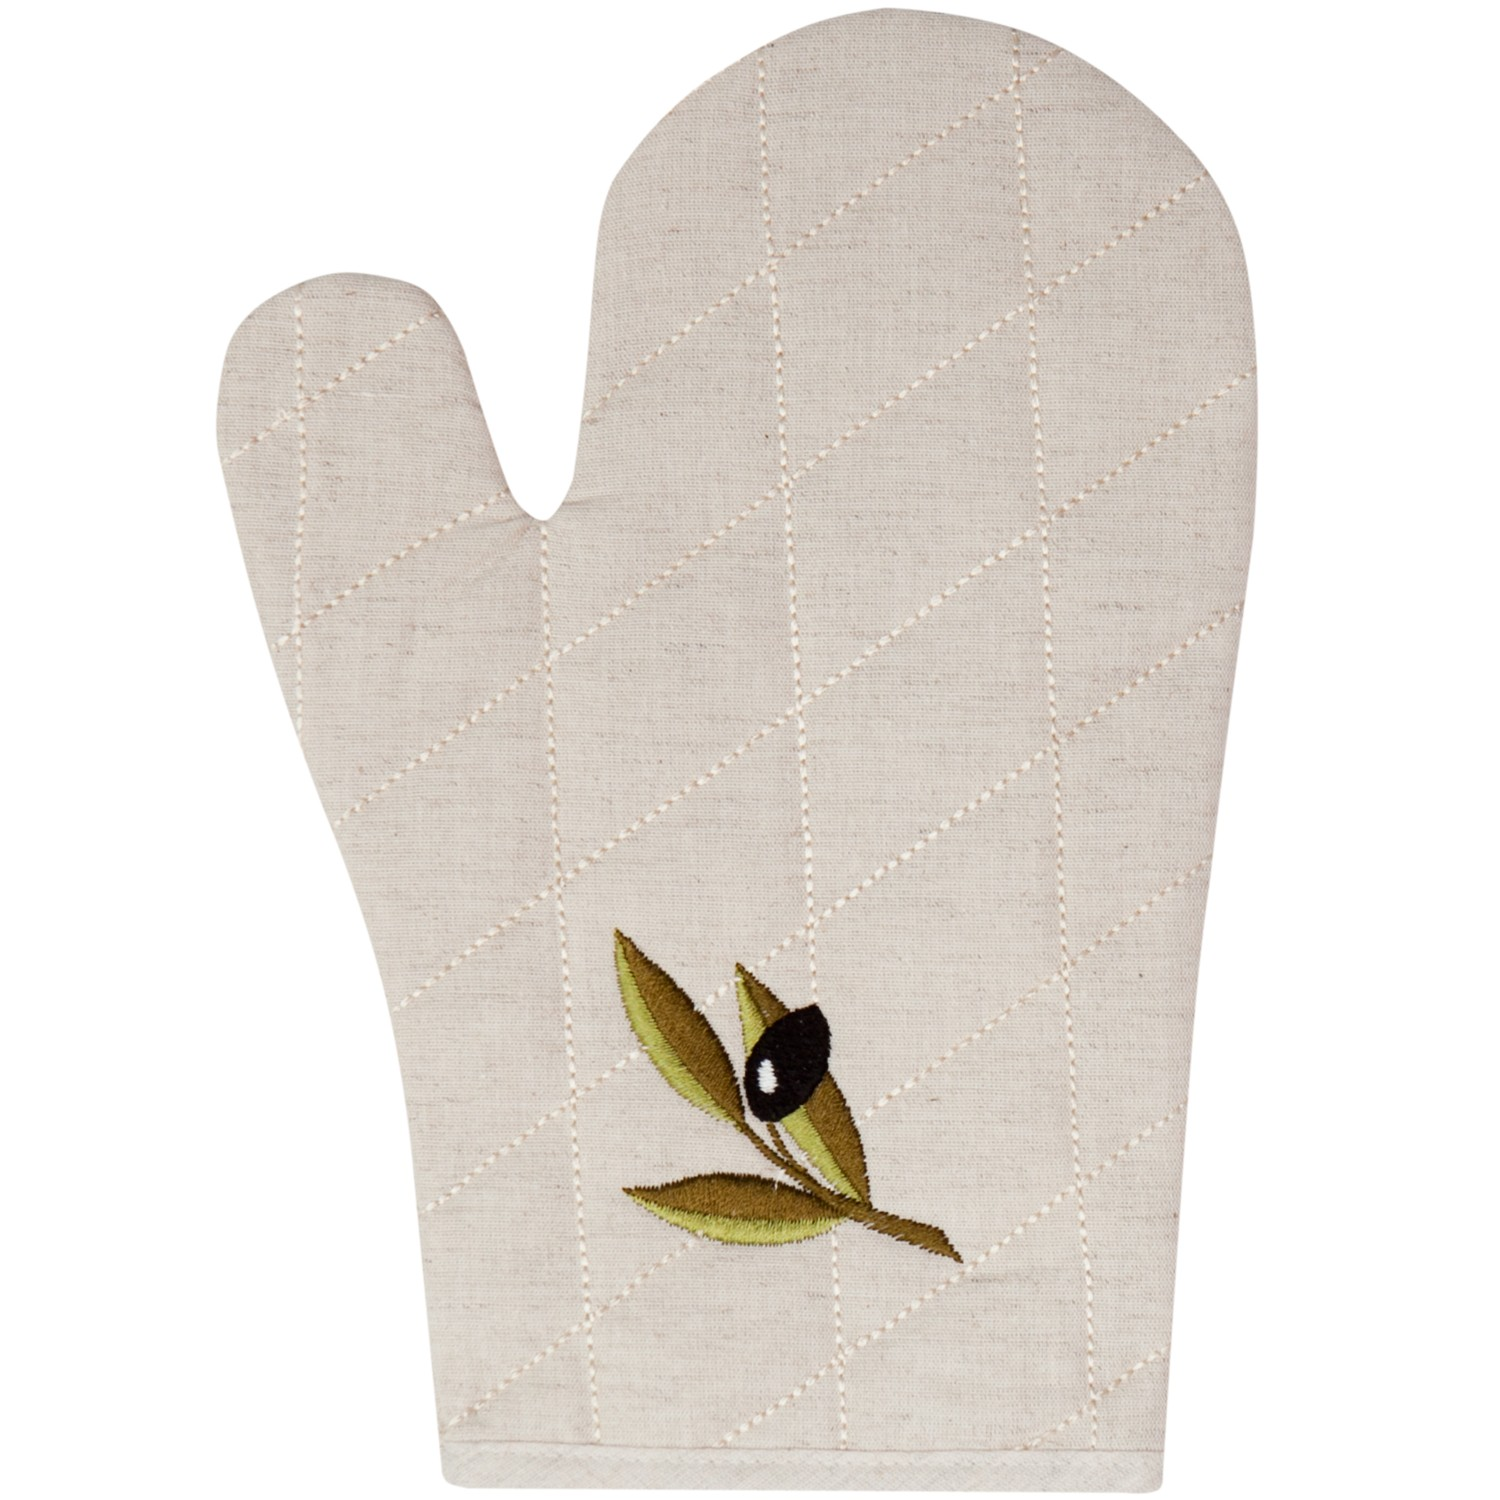 Cotton-Oven-Glove-Embroidered-Olives-1